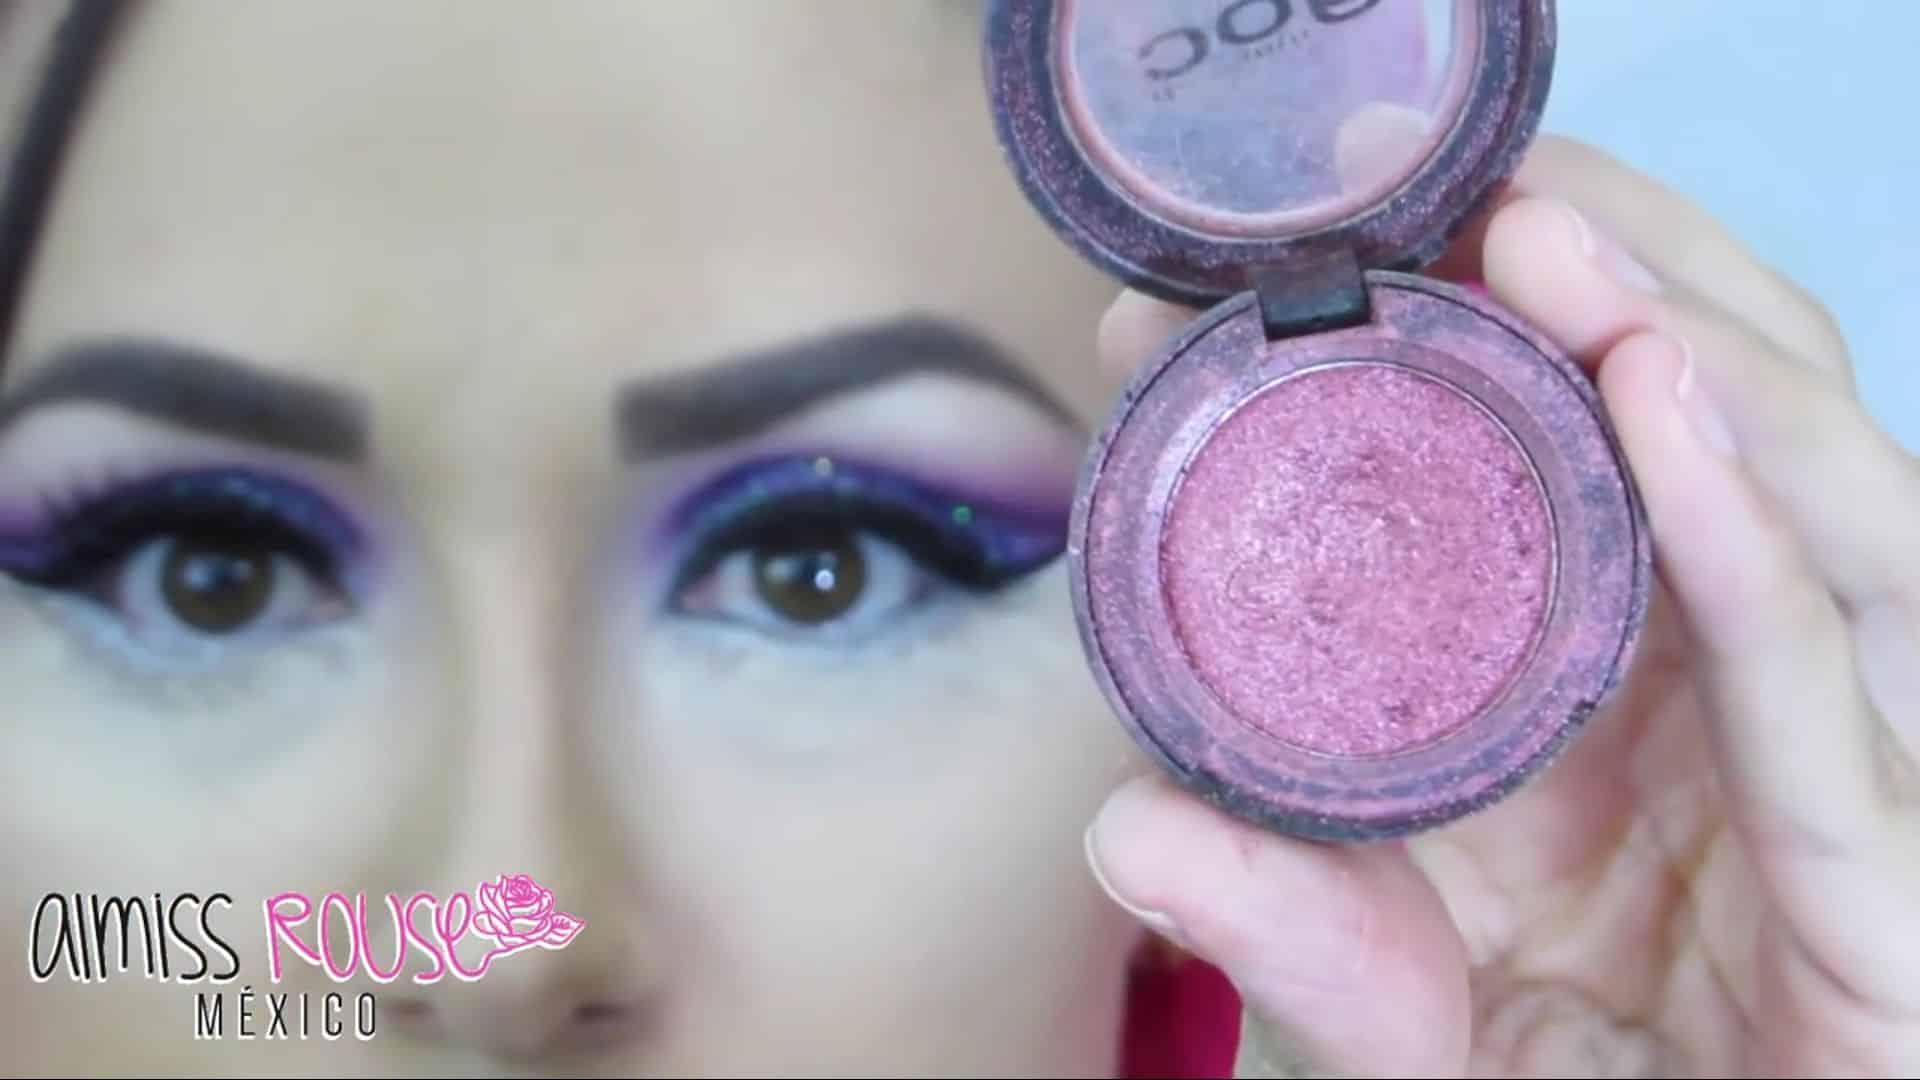 Paso a paso maquillaje Árabe almiss rouse 2020,  sombra rosa